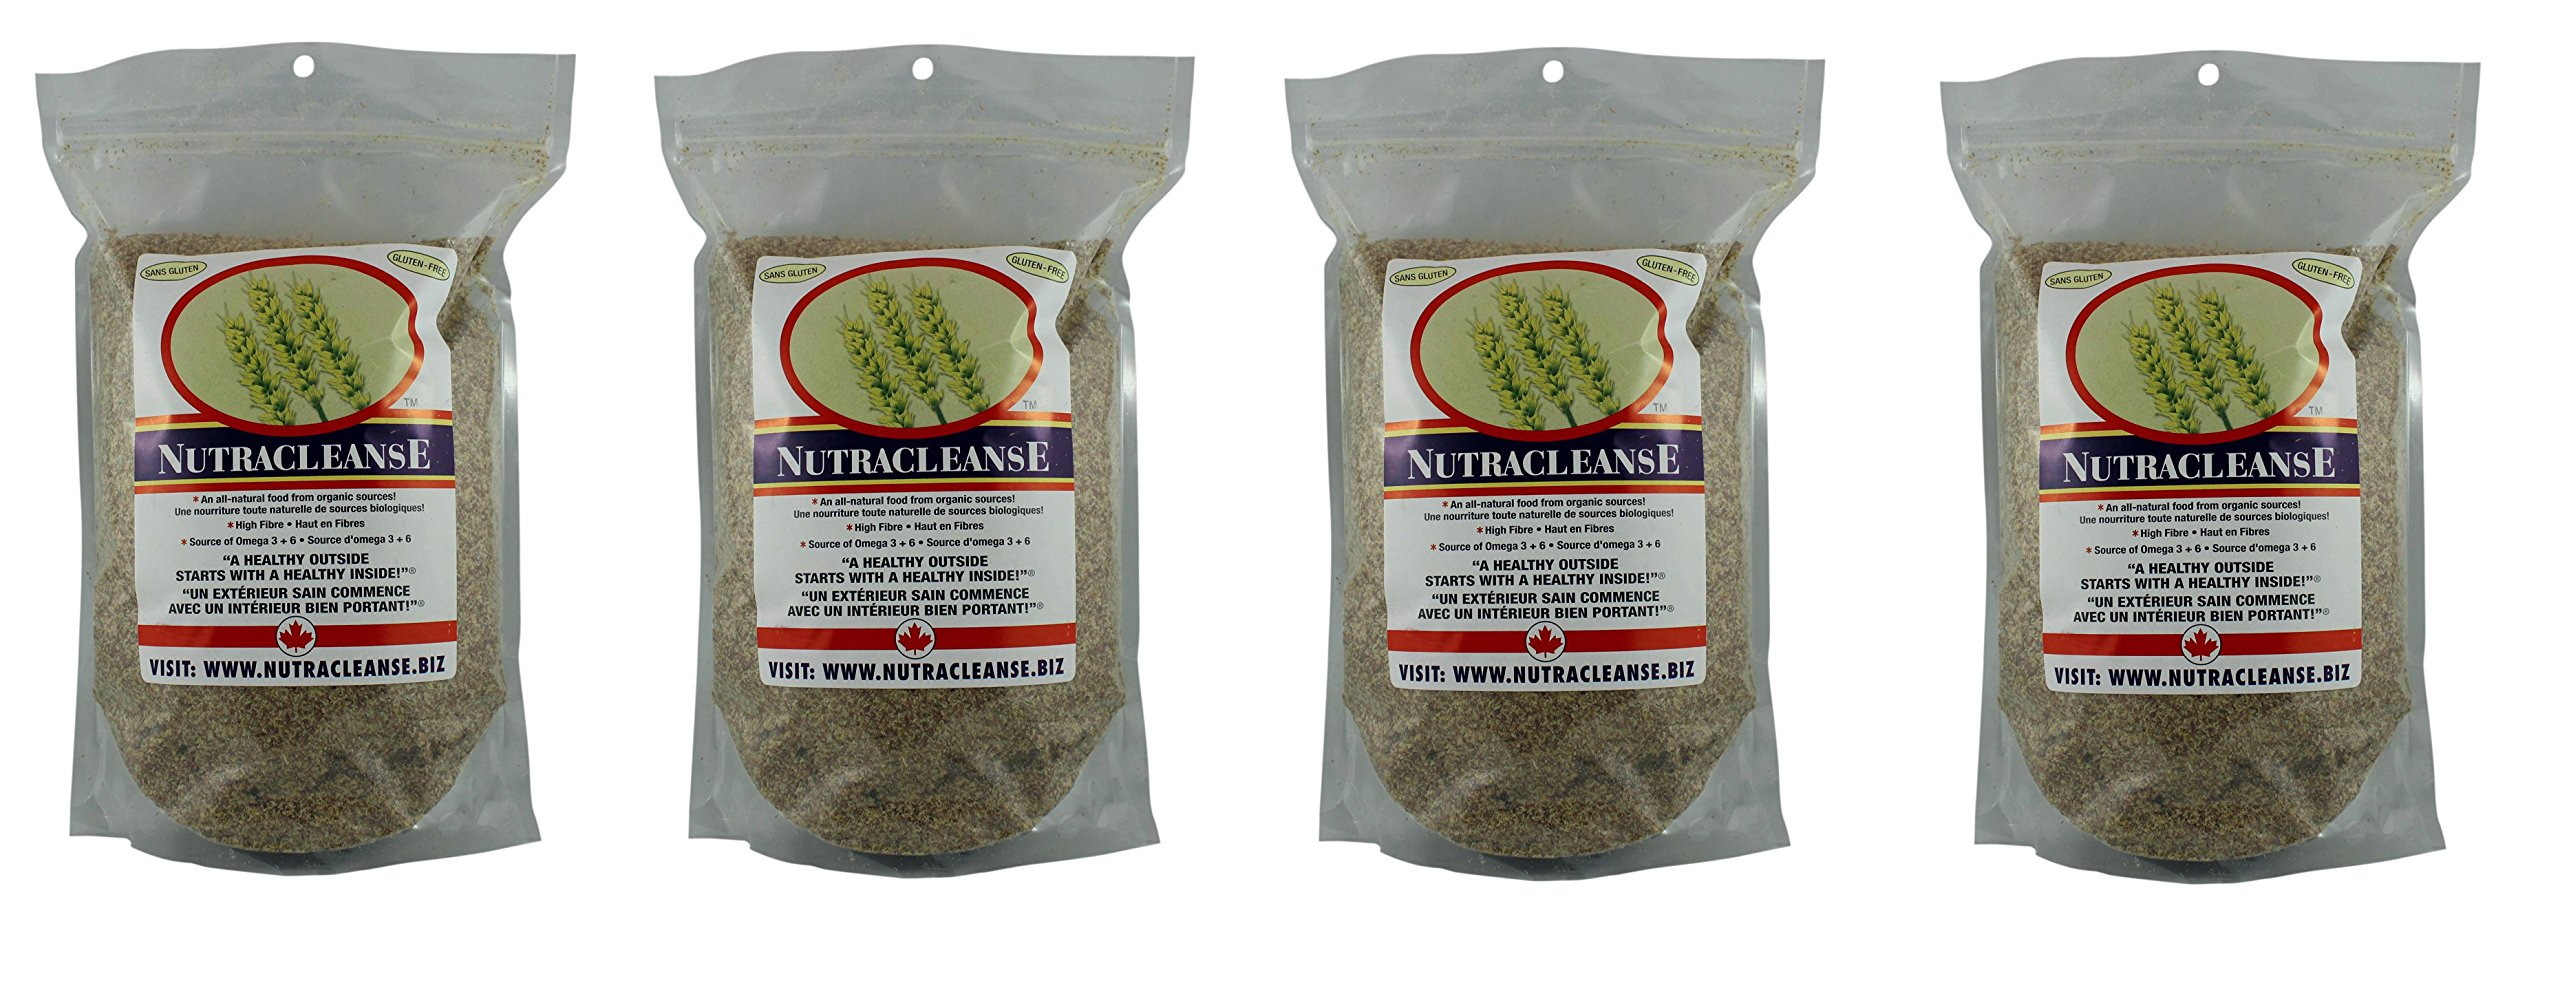 NutraCleanse DEAL (4 x 1 kg)